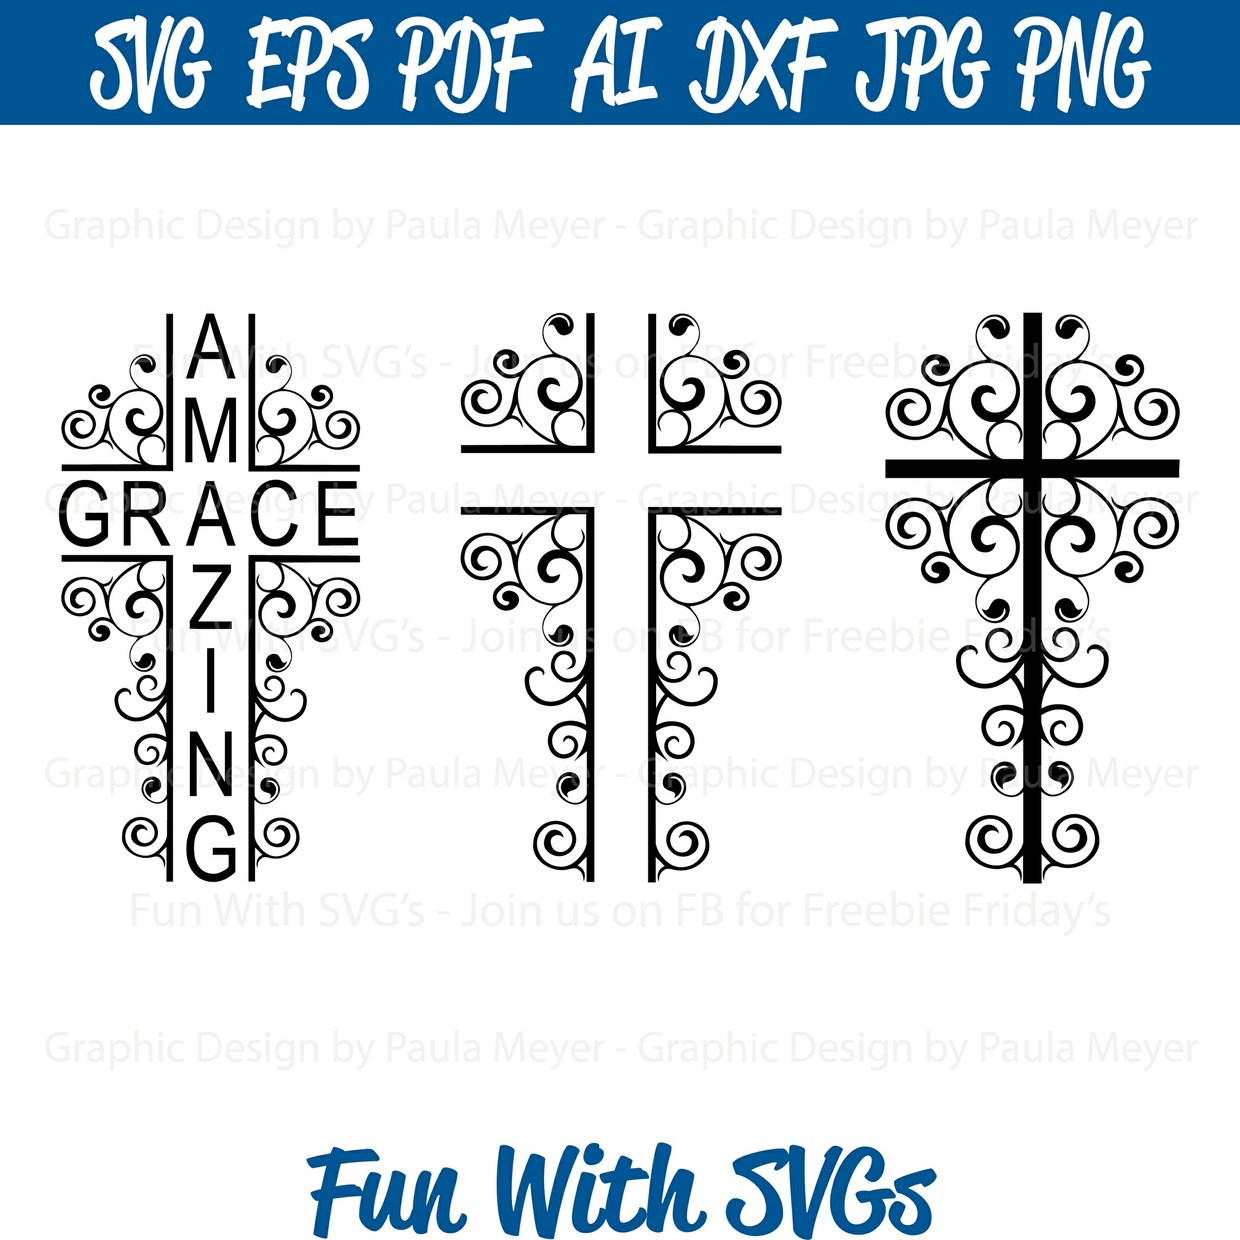 Split Scroll Cross - Amazing Grace - SVG Cut File, Printable Graphics and Editable Vector Art